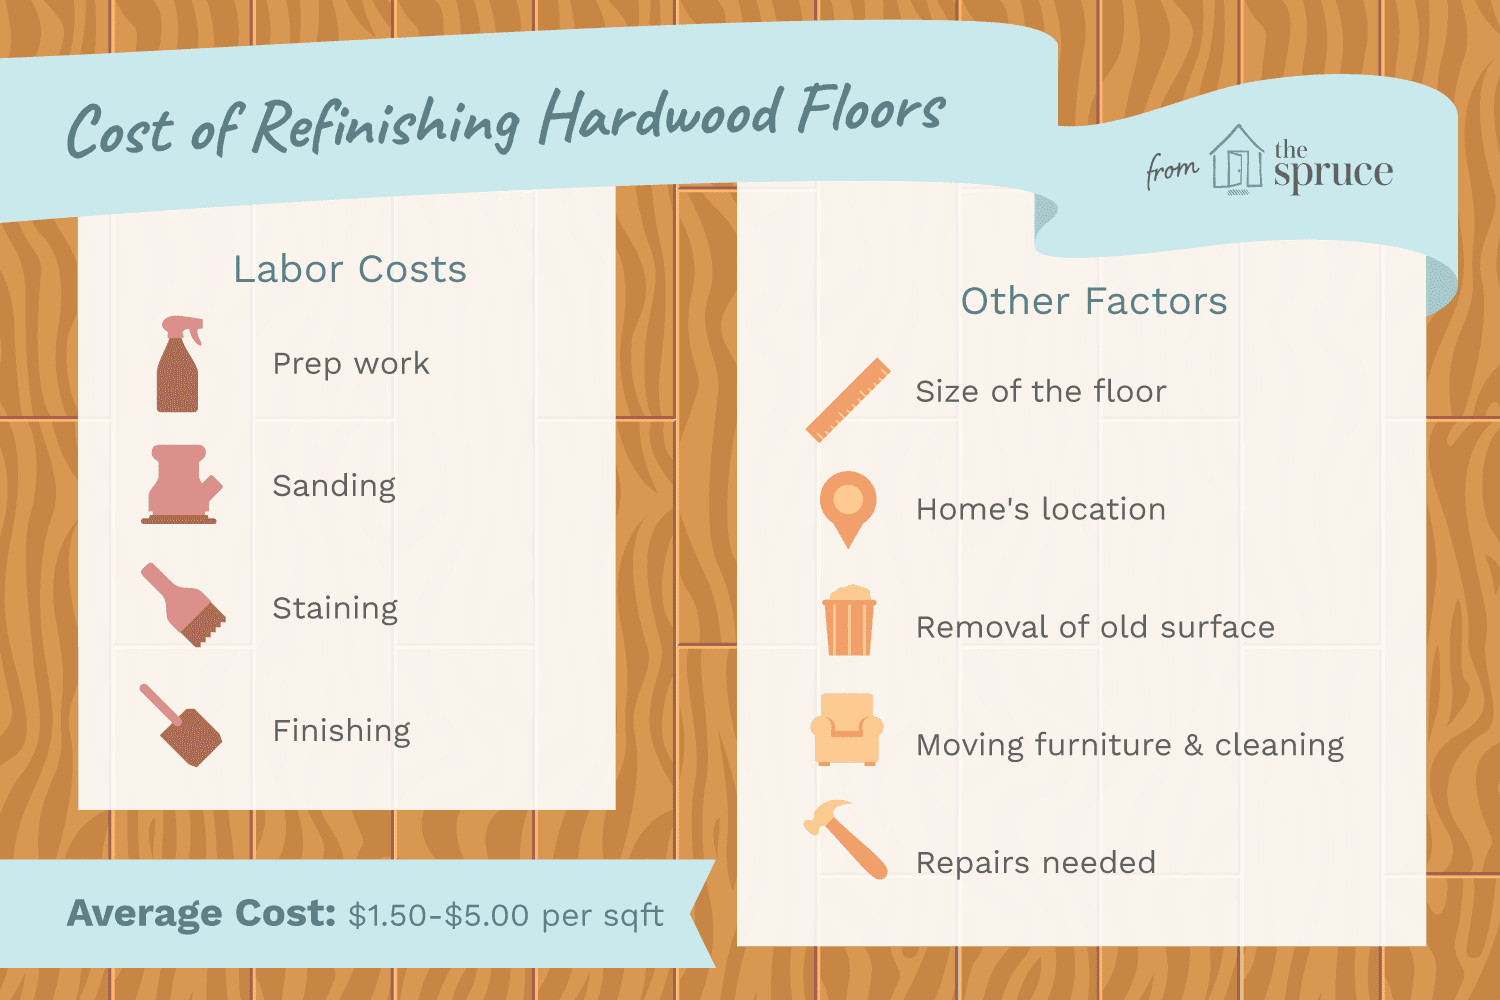 knoxville hardwood floor refinishing of the cost to refinish hardwood floors regarding cost to refinish hardwood floors 1314853 final 5bb6259346e0fb0026825ce2